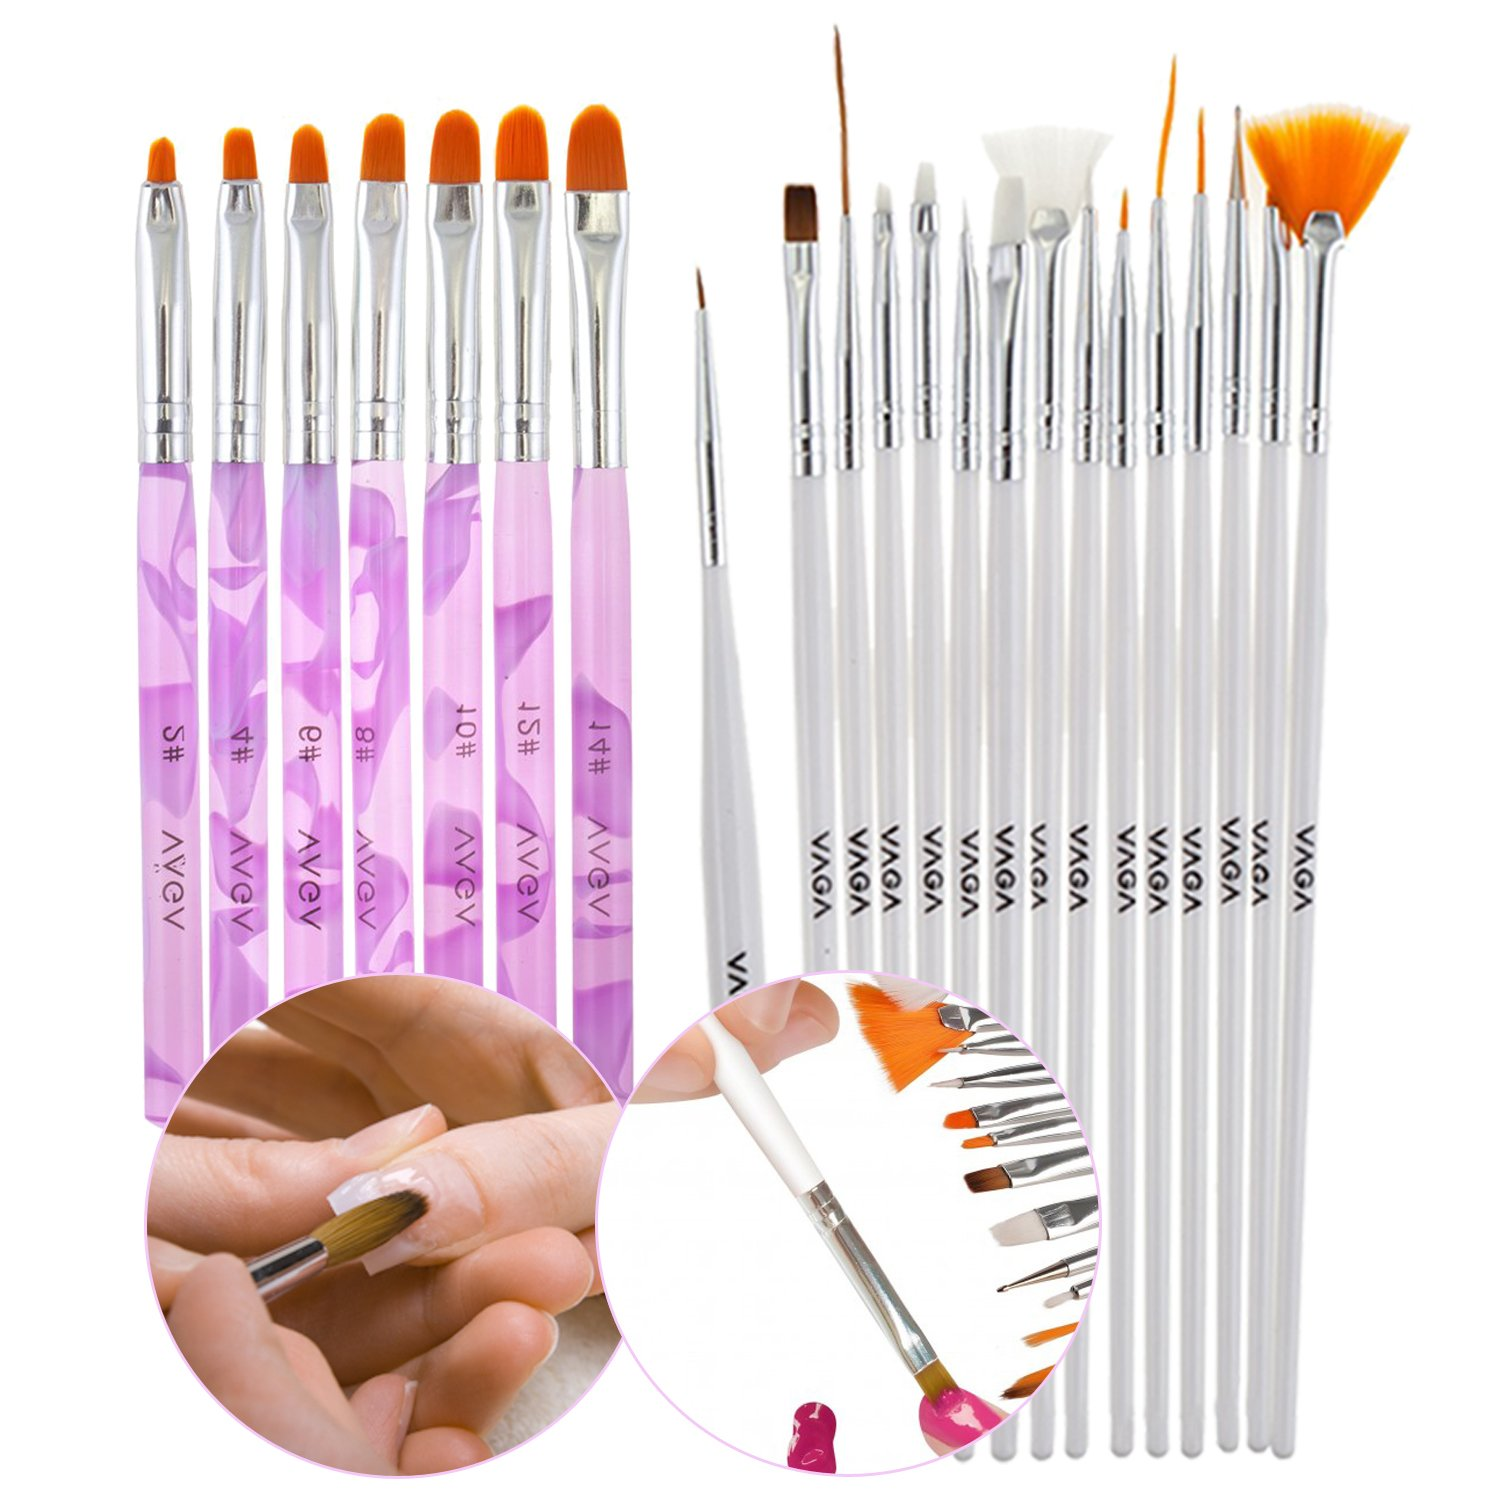 Premium Quality Professional Manicure Nail Art Set Kit With Stripers, Liners, Dotters And Acrylic Brushes Tools By VAGA®